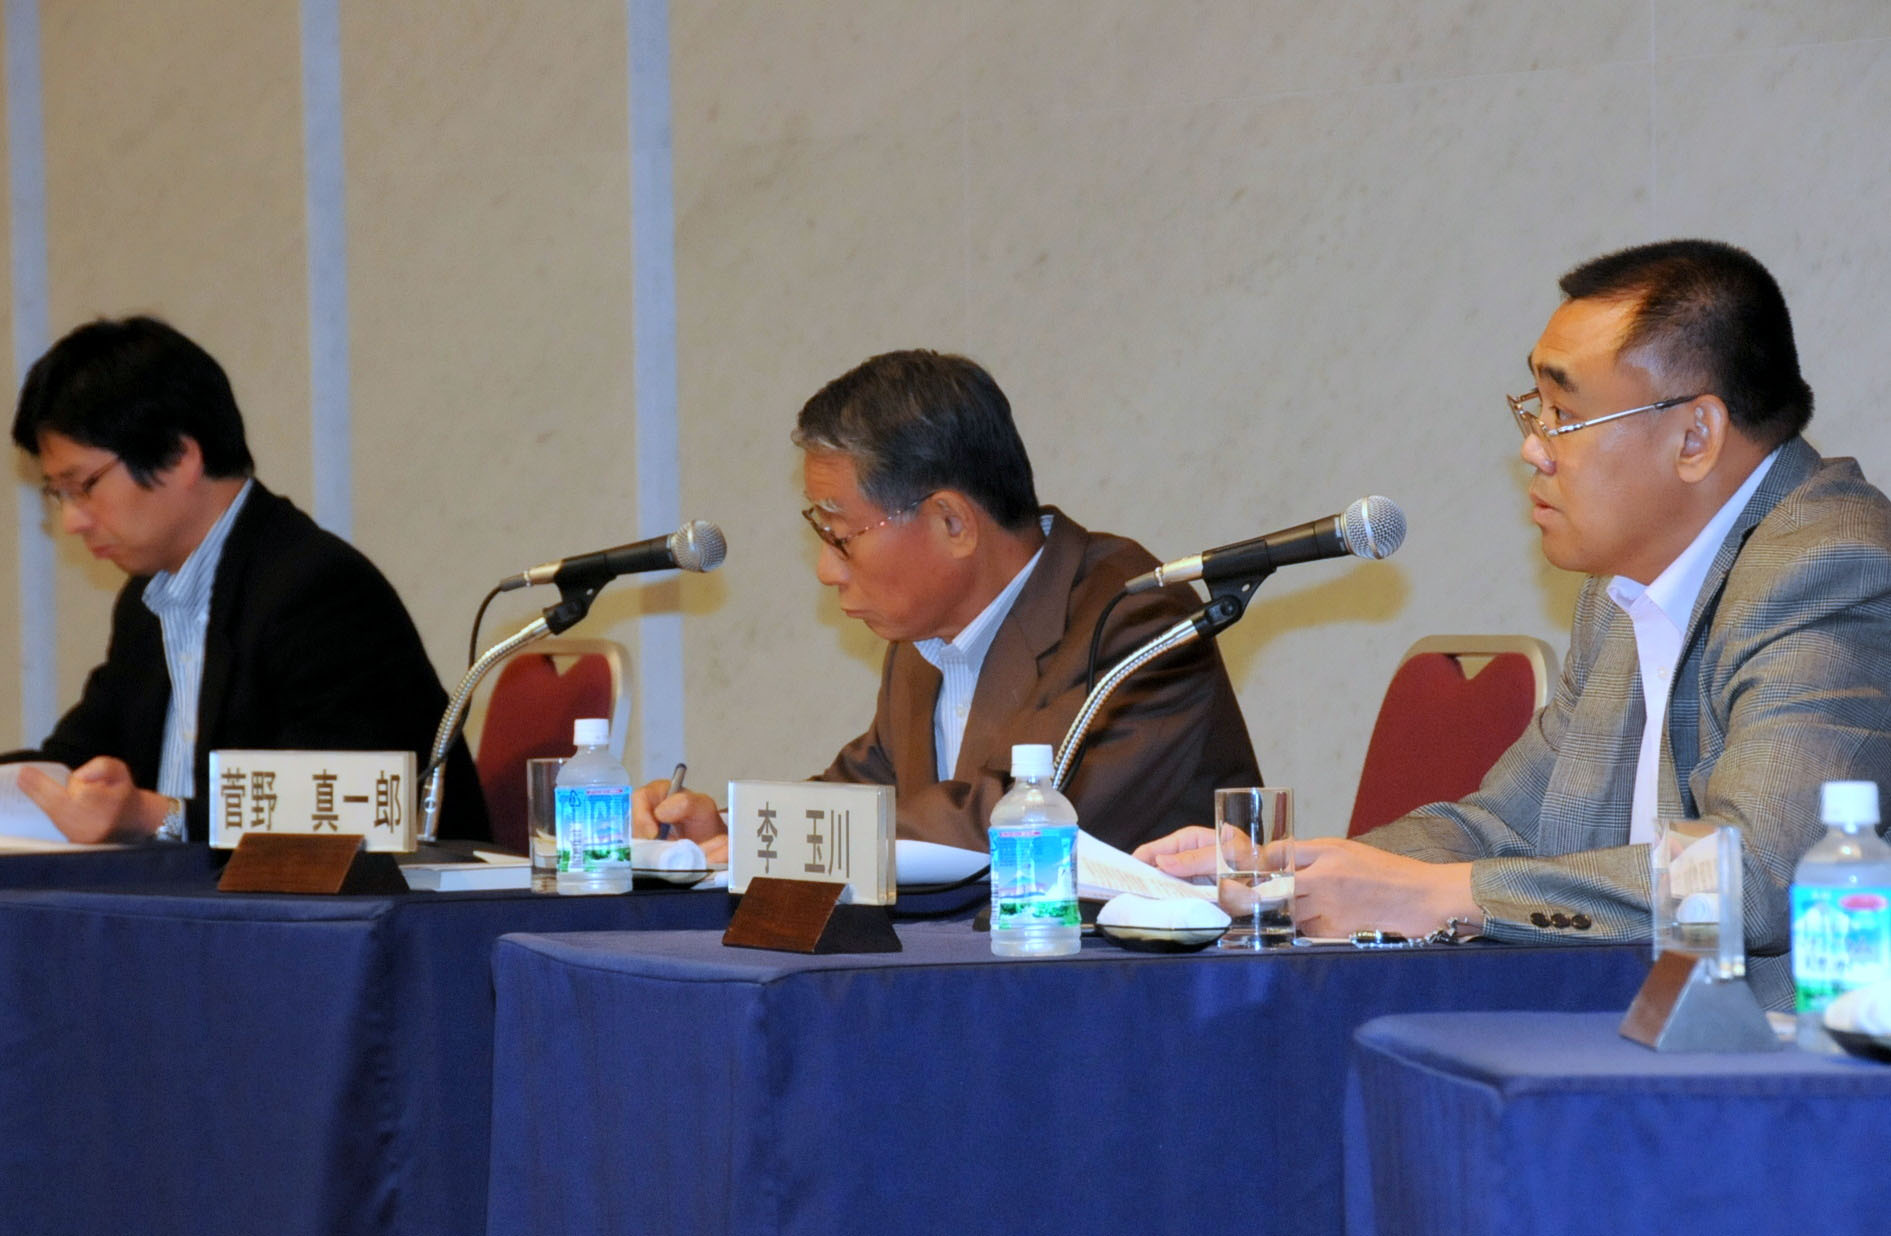 Li Yuchuan (right), Tokyo bureau chief of the Beijing Daily, speaks during the Aug. 29 symposium at Keidanren Kaikan in Tokyo, while Liu Jie (left), a professor at Waseda University's Faculty of Social Sciences, and Shinichiro Kanno, an adviser to Mizuho Corporate Bank, listen. | SATOKO KAWASAKI